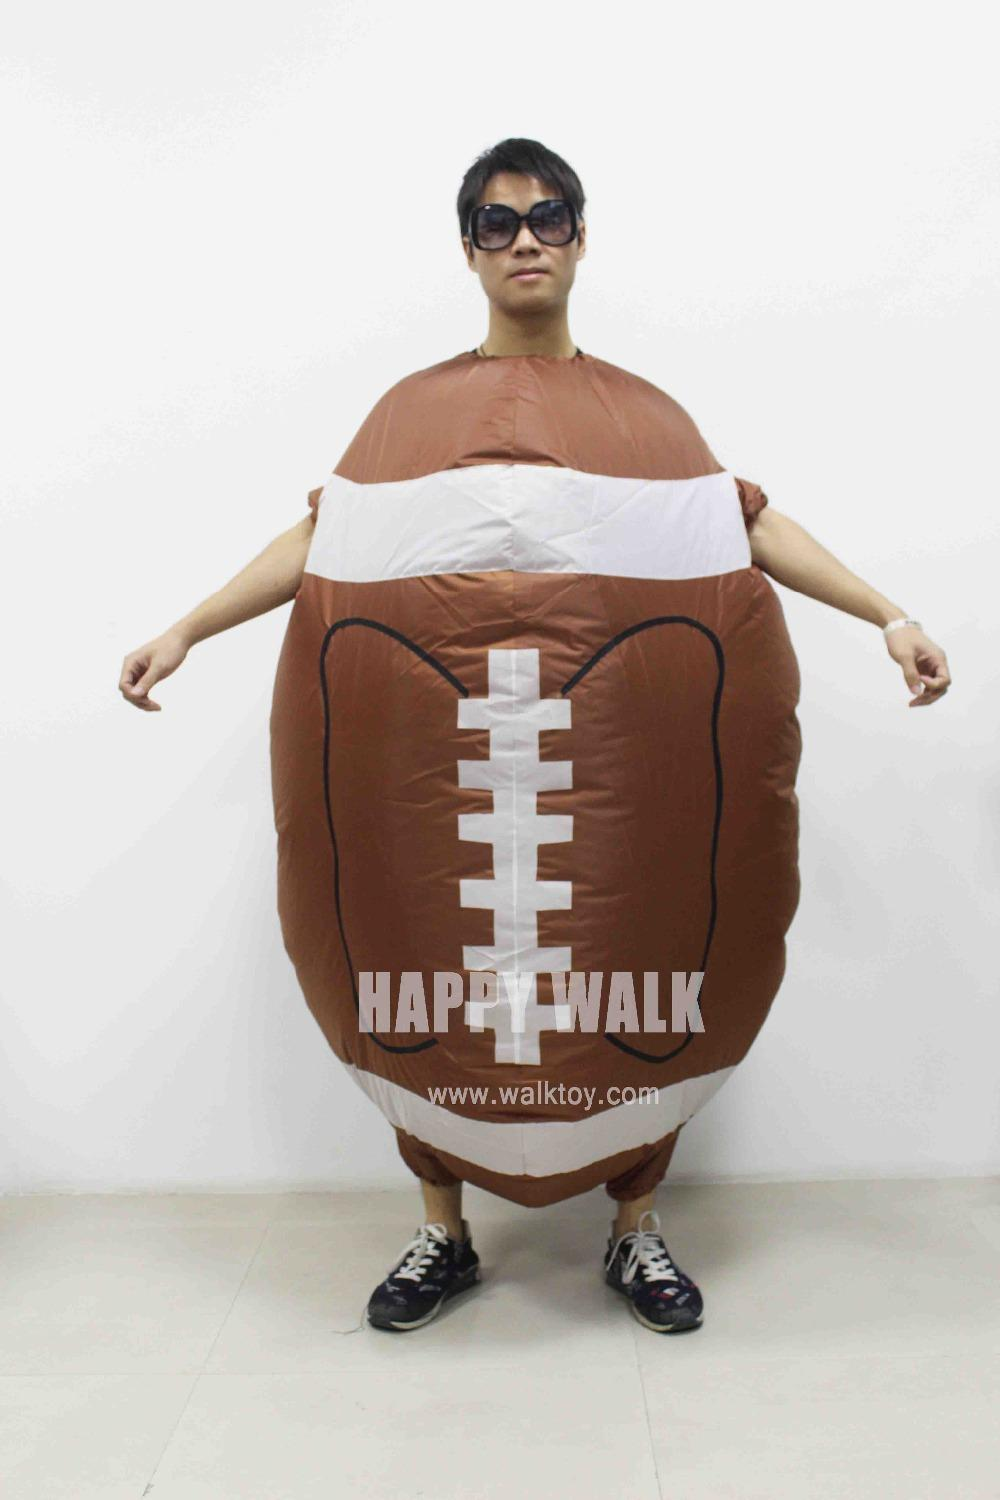 Rugby Inflatable Costume Halloween Any Party Funny Inflatable Costume For Adult Party Activities Props Costumes 5 Person Halloween Costume 6 Person ...  sc 1 st  DHgate.com & New Sale! Rugby Inflatable Costume Halloween Any Party Funny ...